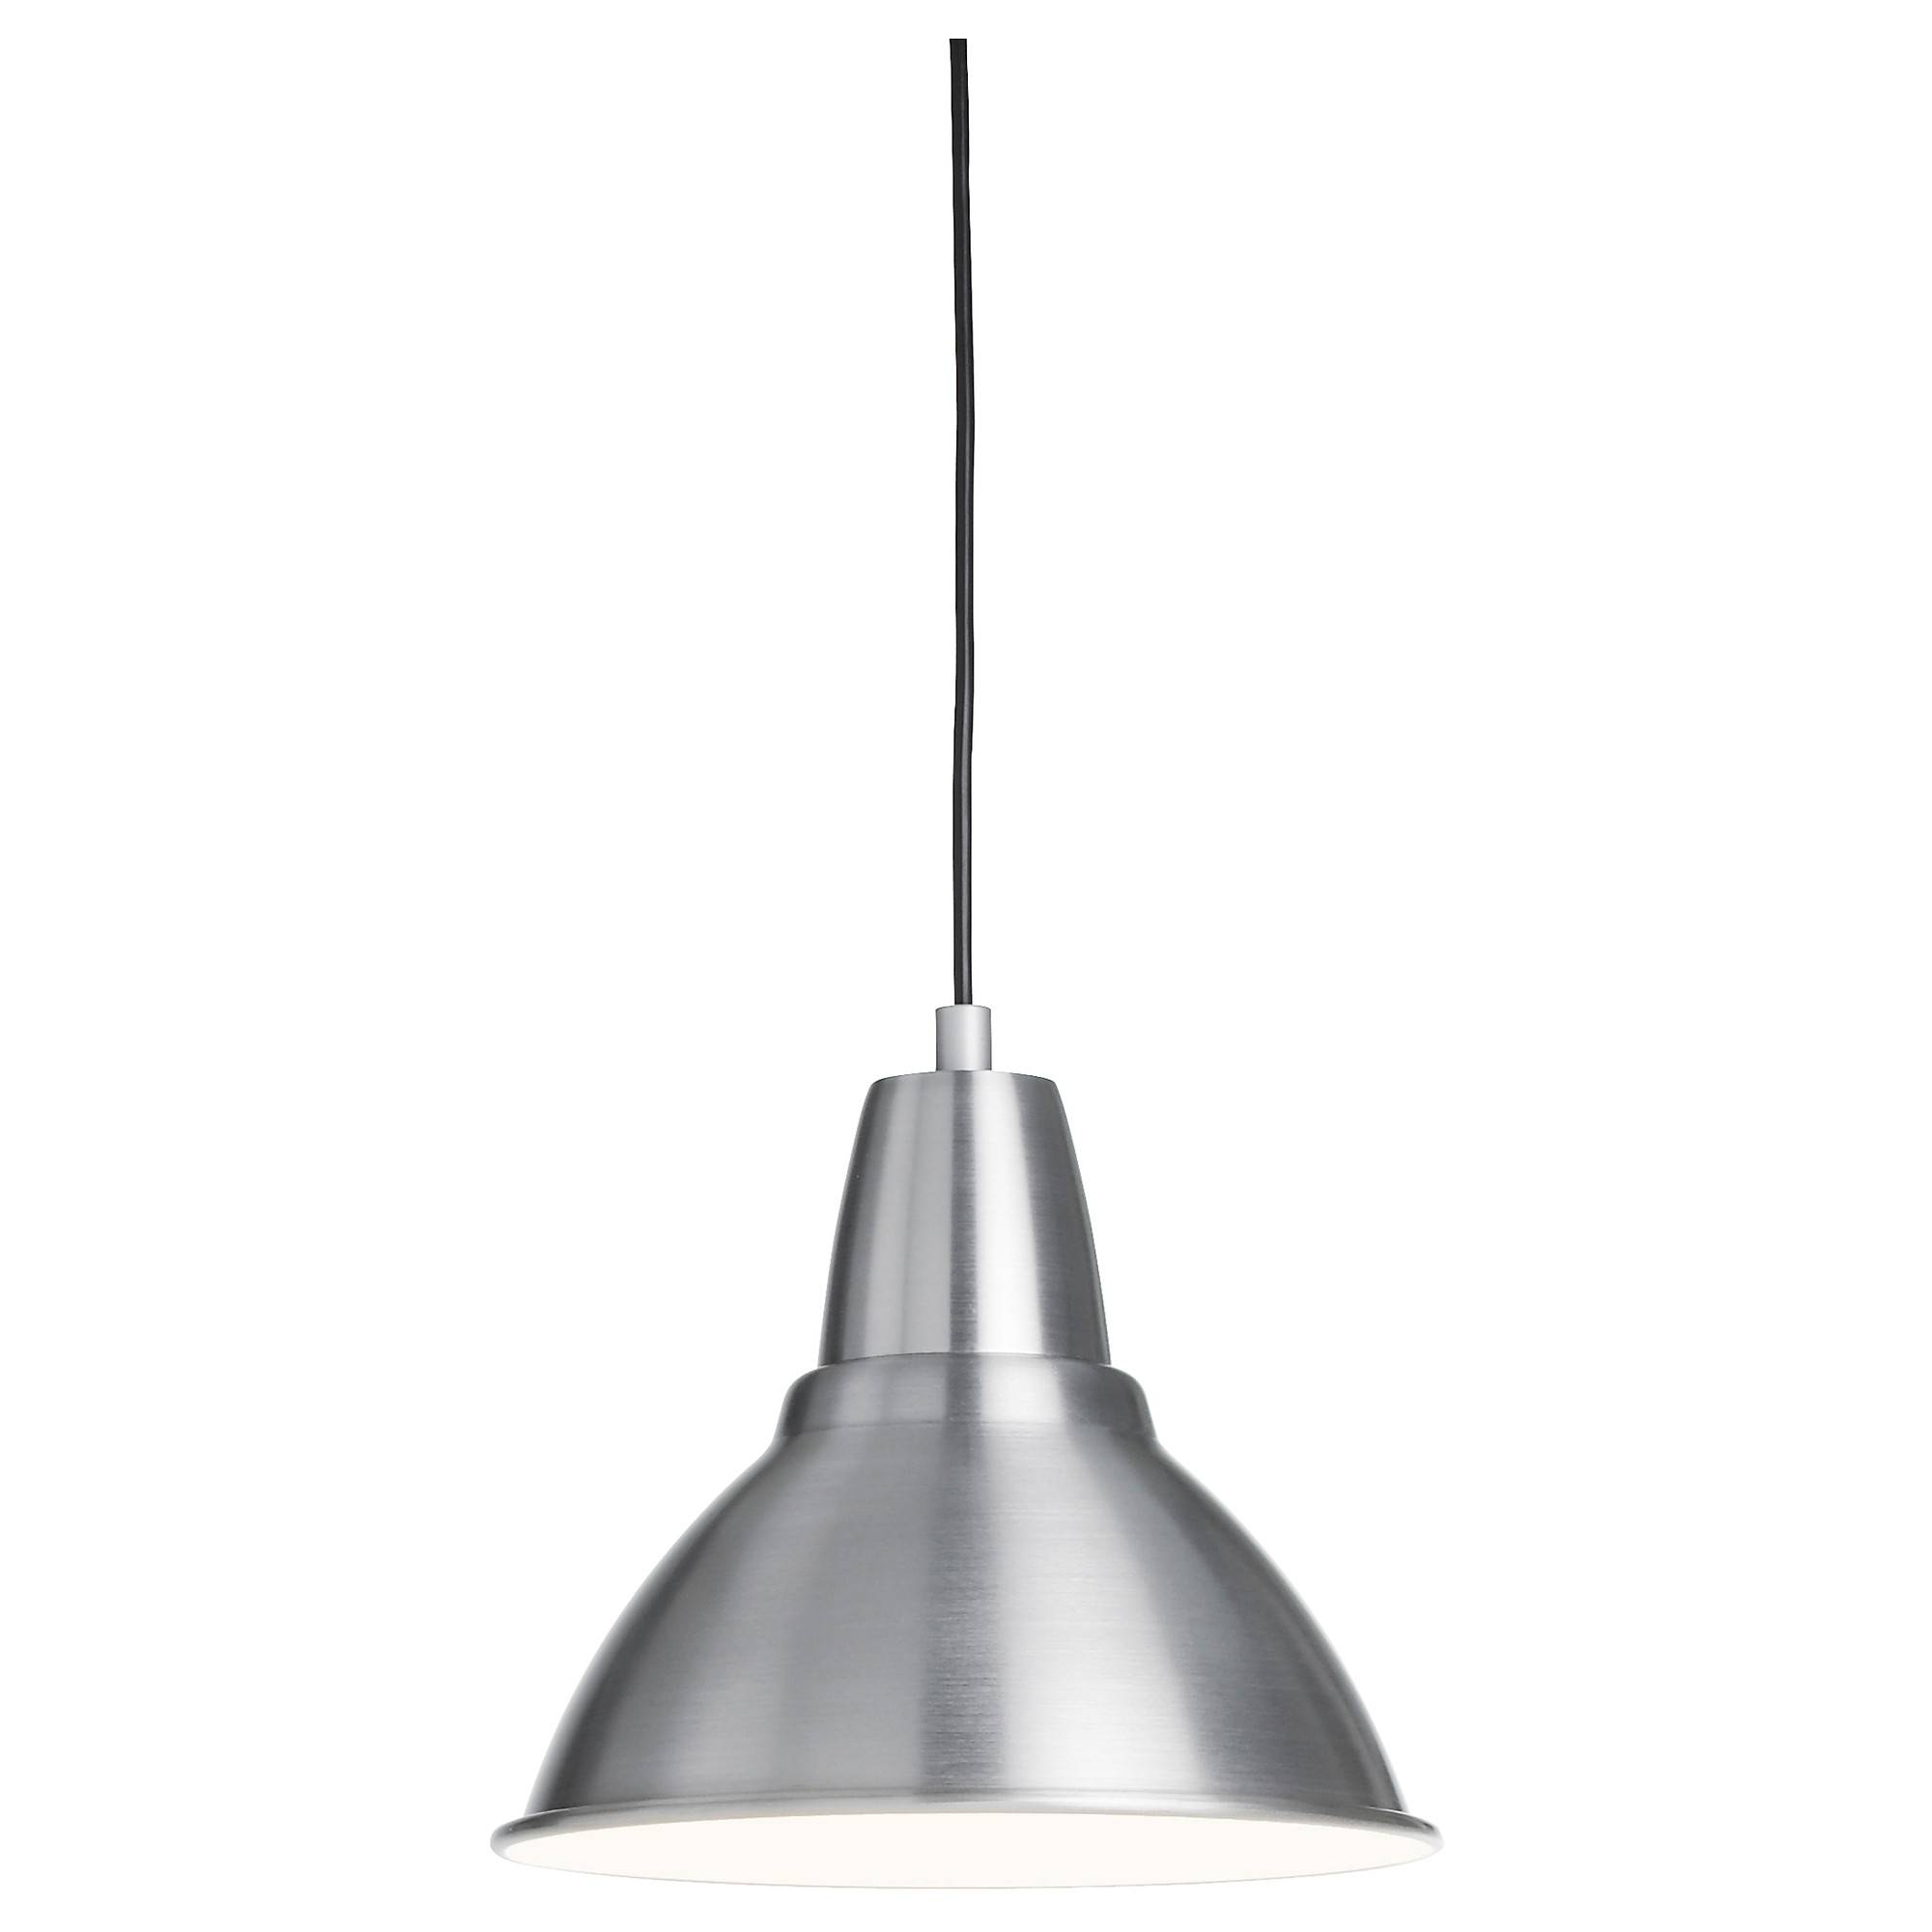 Ceiling Lights : Lavish Ikea Pendant Light Review , How To Install Pertaining To Ikea Pendant Lighting (View 15 of 15)